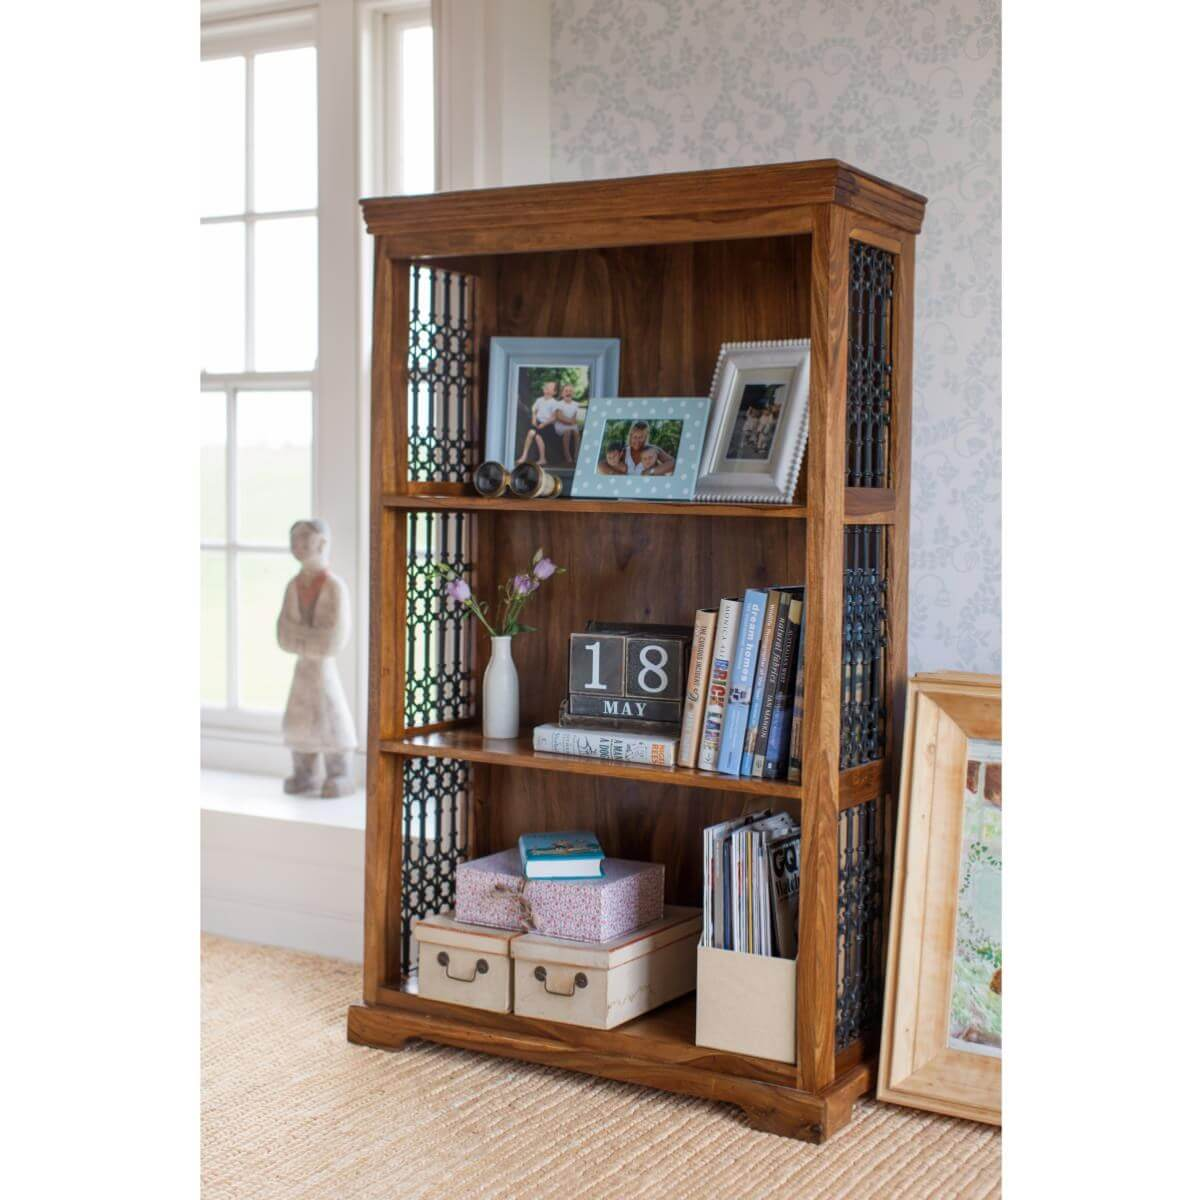 3 tier bookcase with Jali style panels in the sides